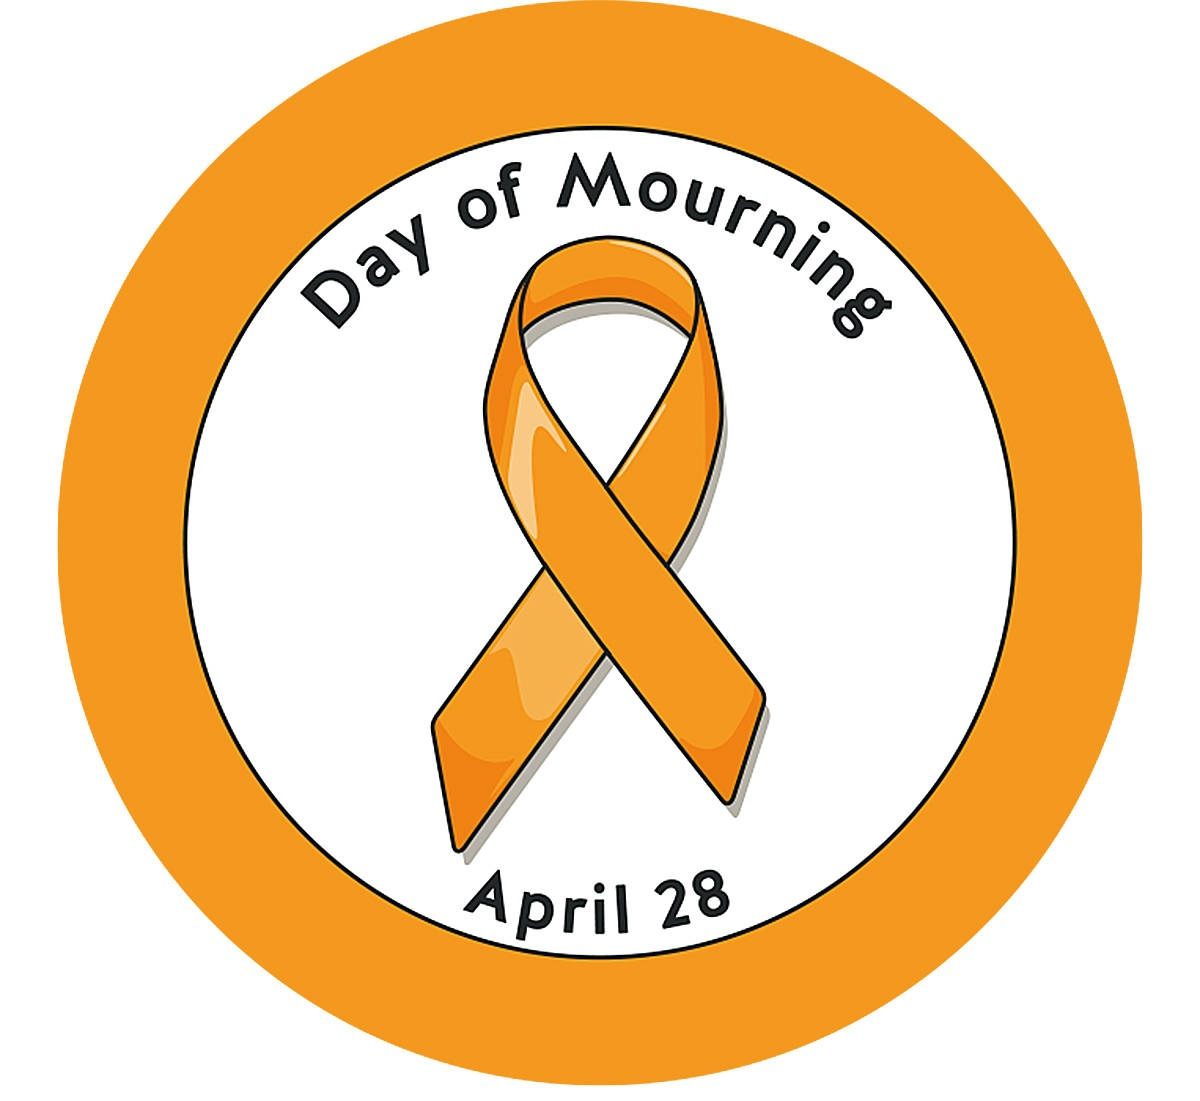 GSFP HOLDS DAY OF MOURNING CEREMONY -